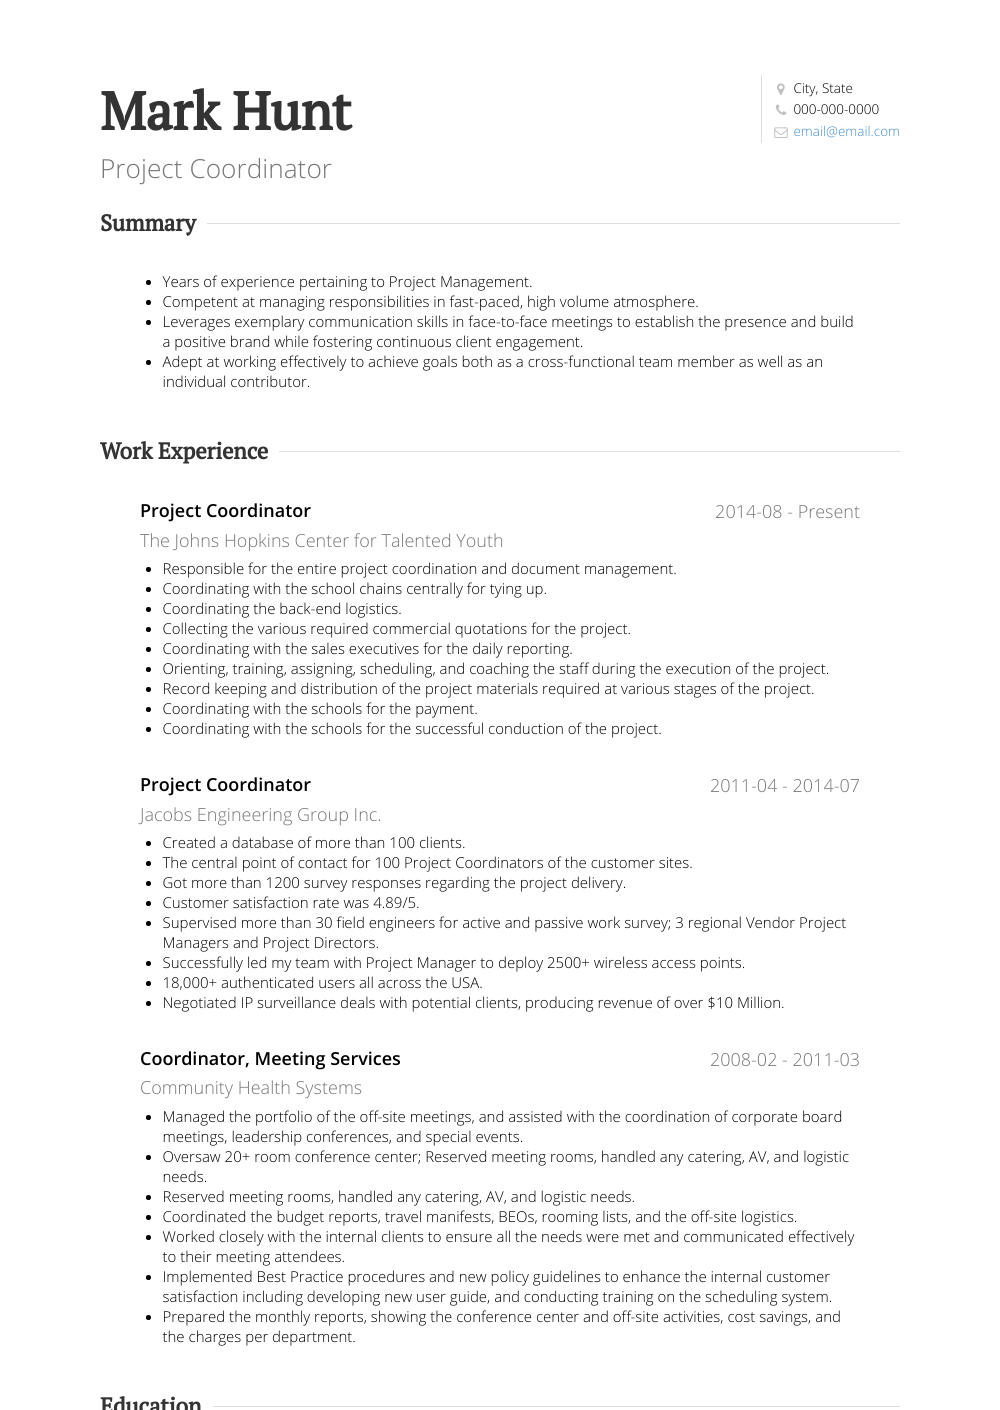 Project Coordinator Resume Sample and Template